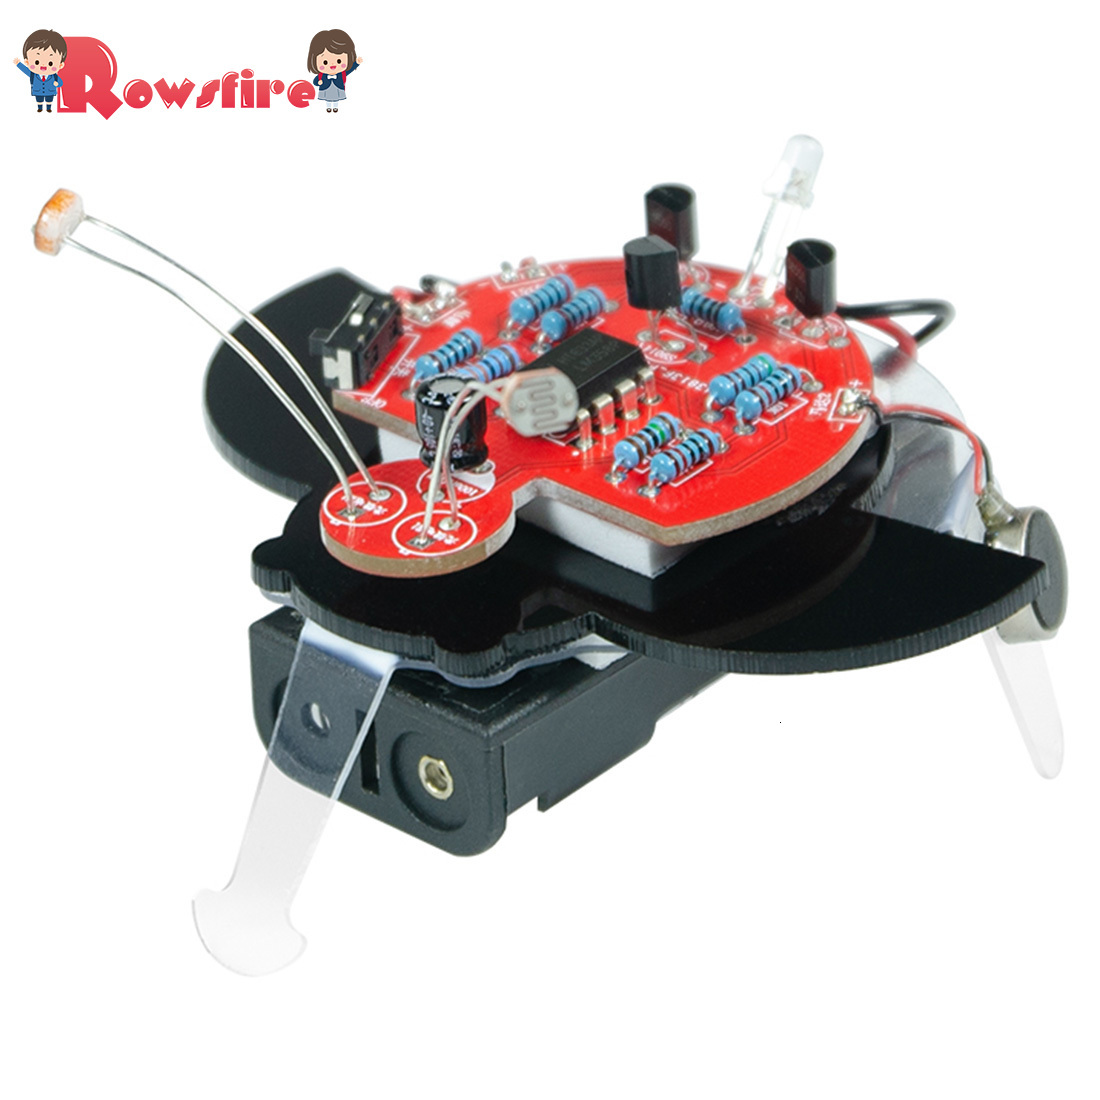 Maker DIY Fireworm Glowworm STEAM Photographic Robot Educational Kit With BLN And Photo Resistor